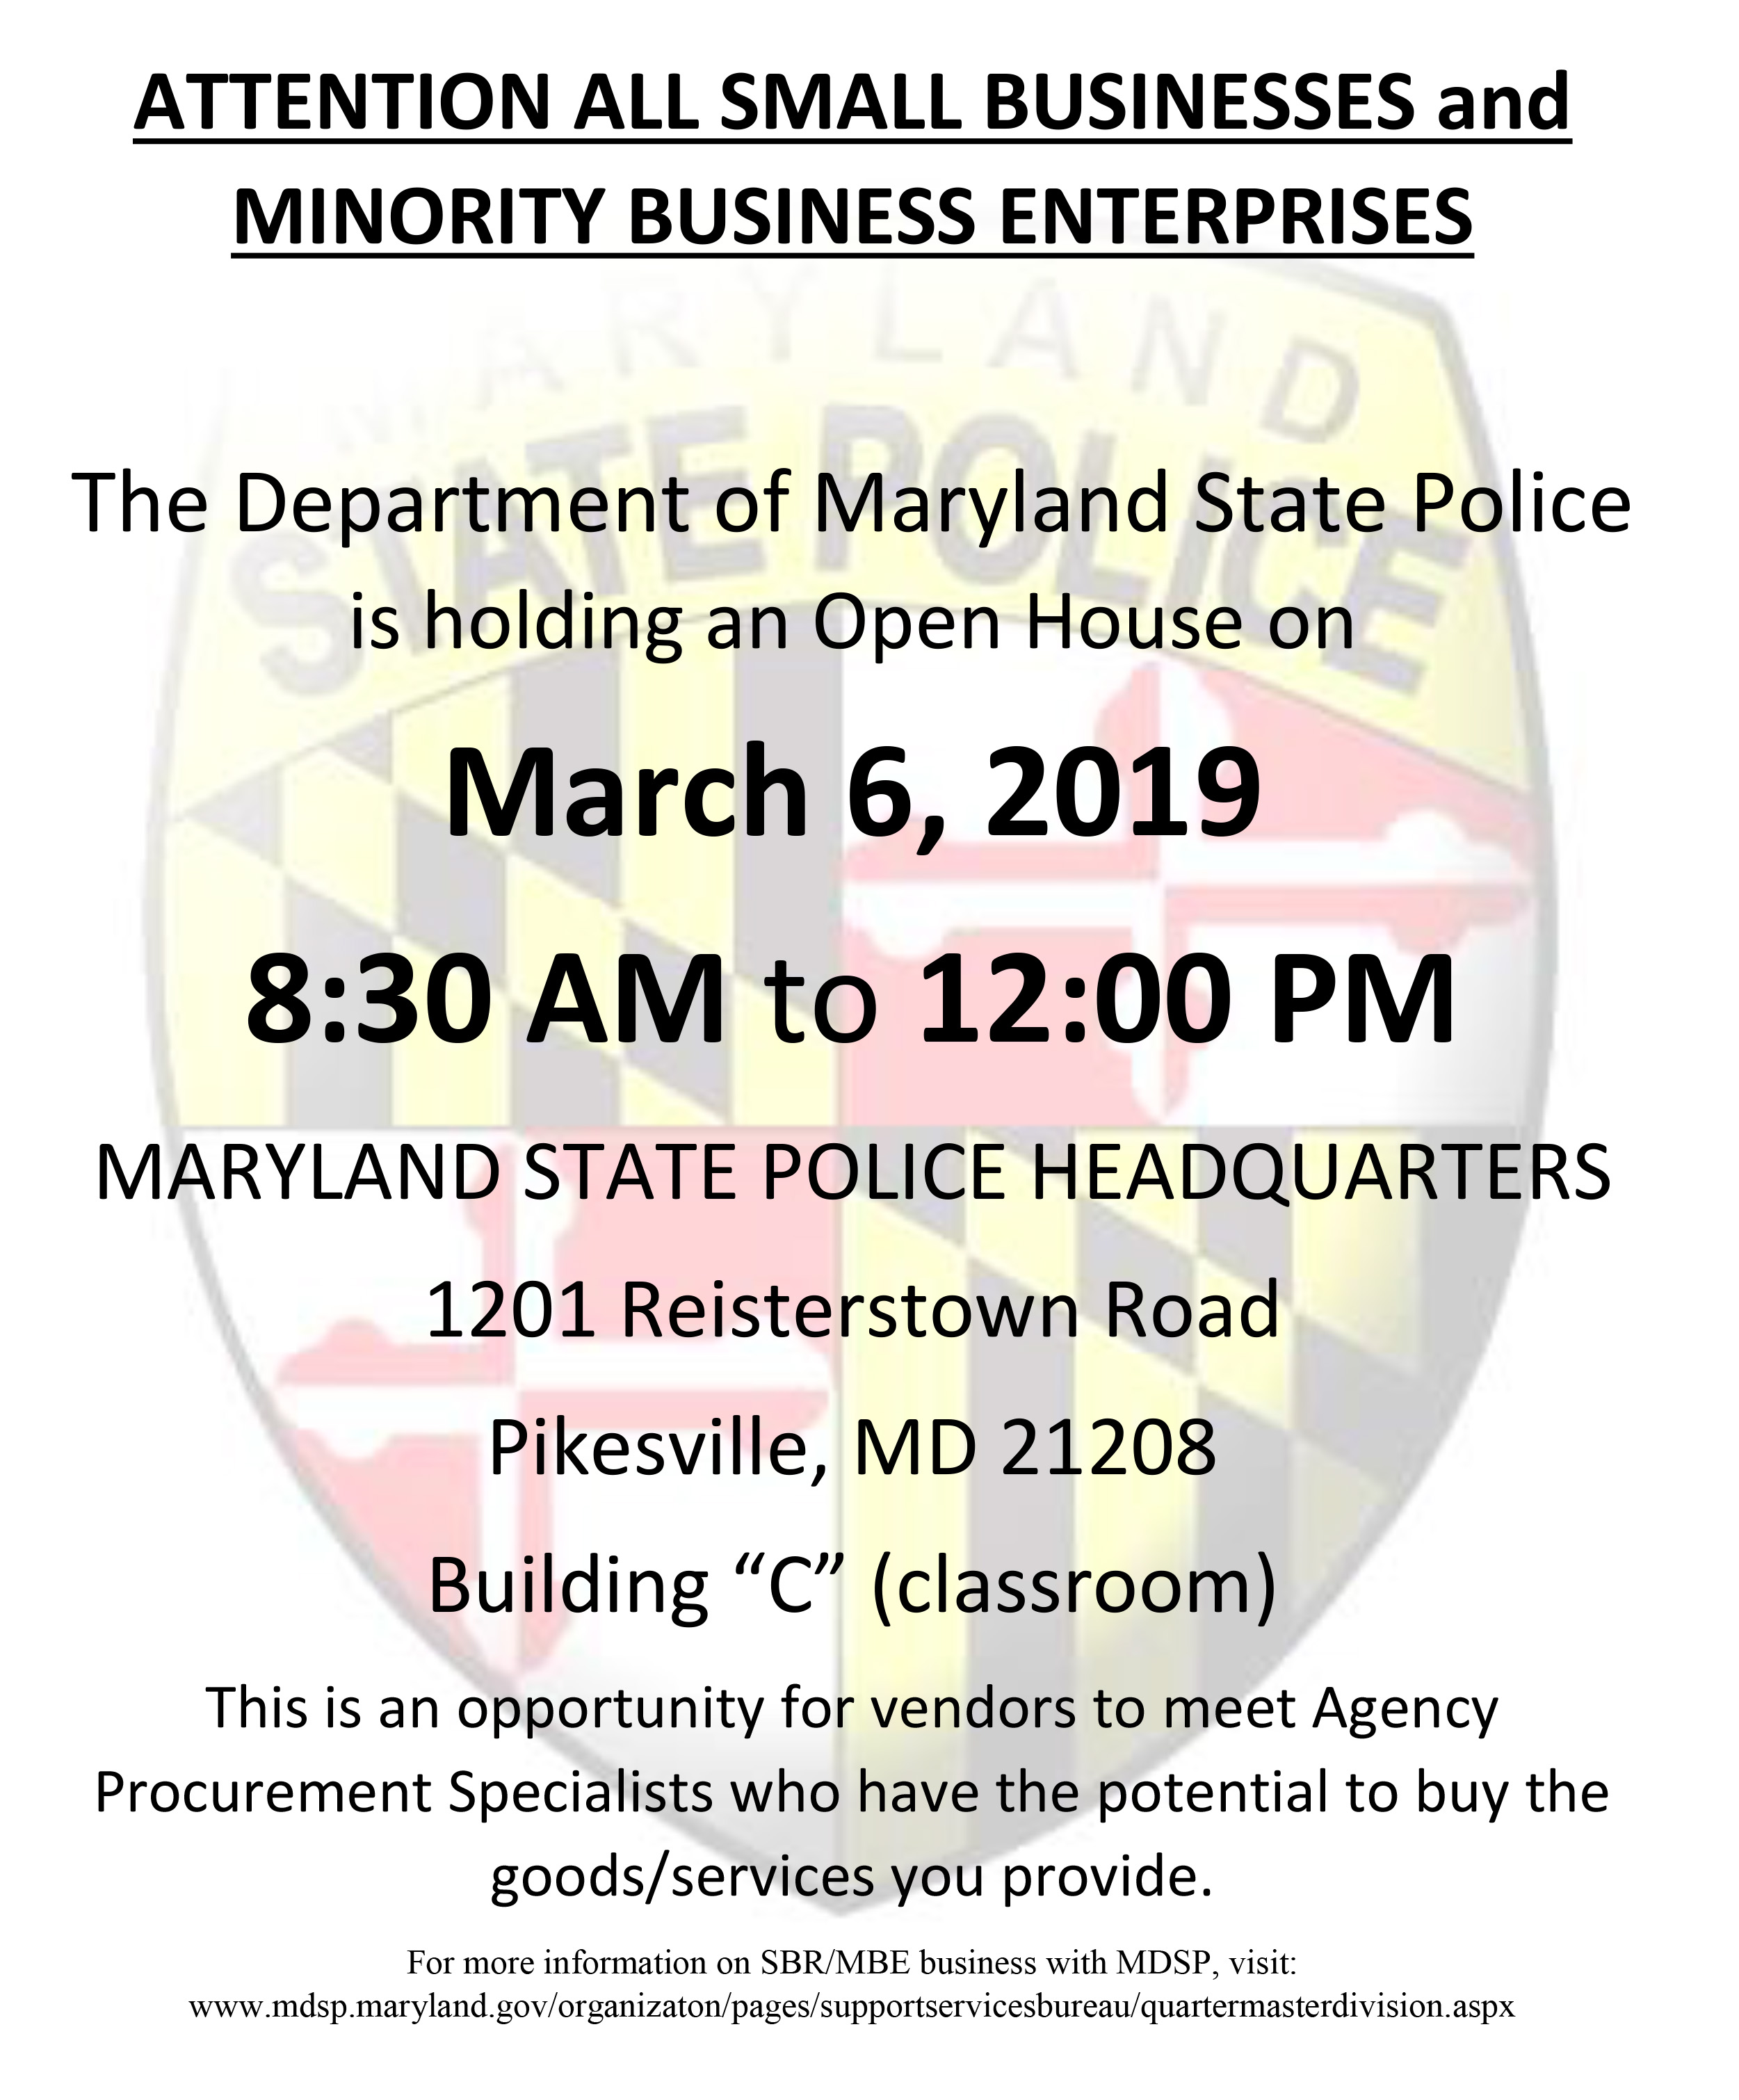 3-6-19ATTENTION ALL SMALL BUSINESSES and MINORITY BUSINESS ENTERPRISES.jpg